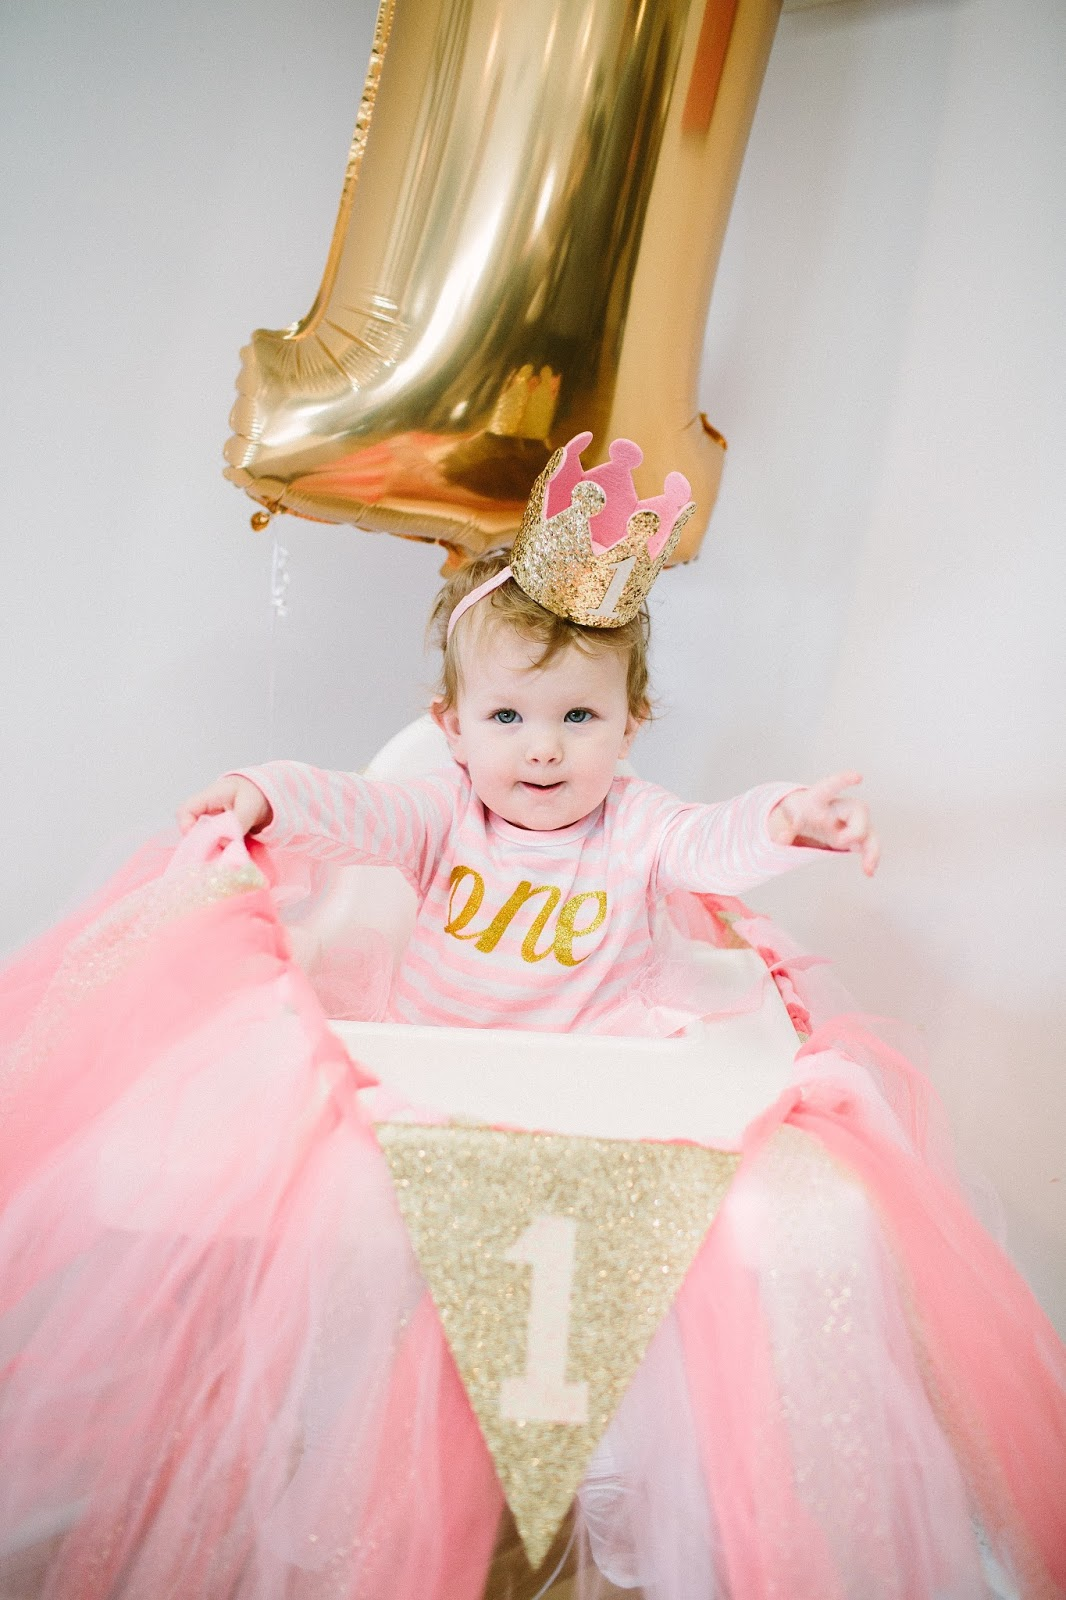 One Birthday Outfit, Baby Birthday Party Outfit, Pink tulle skirt